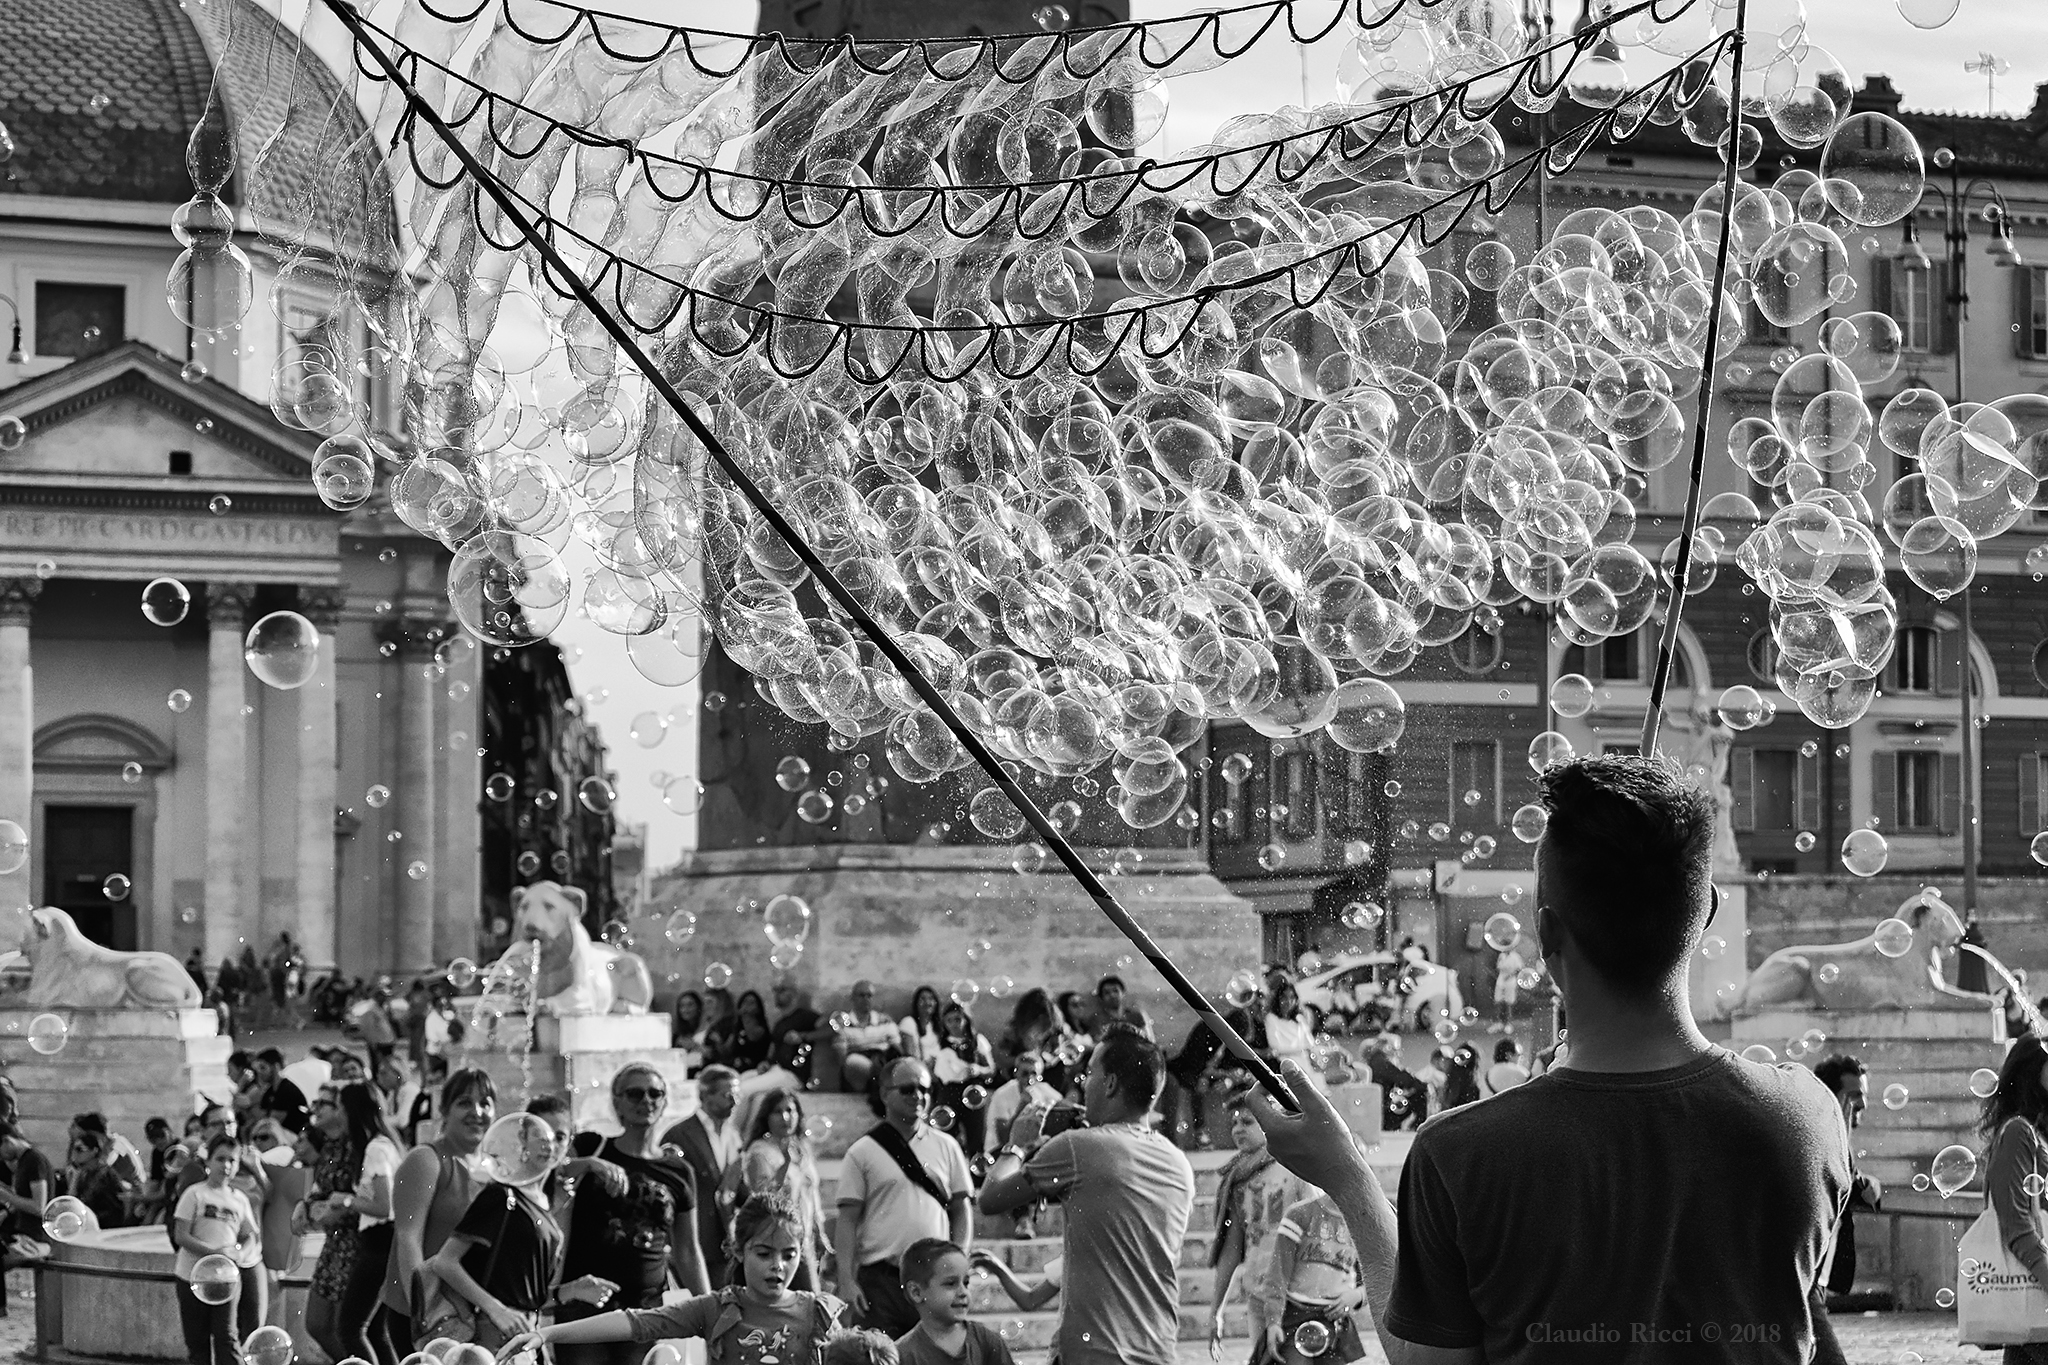 The Curtain of Bubbles, Rome, 2018...